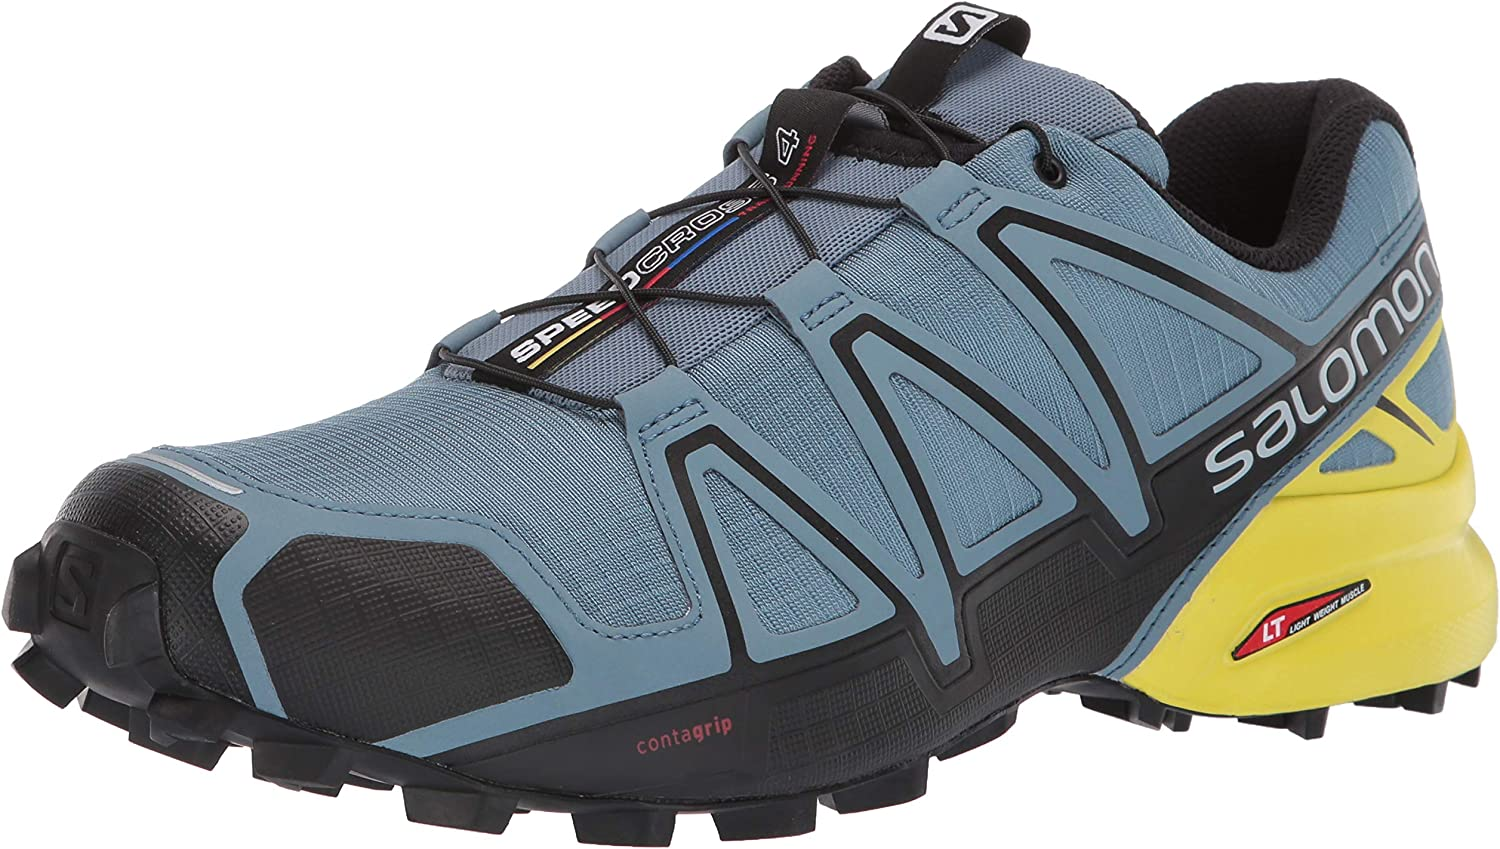 Salomon Men s Speedcross 4 Trail Running Shoes, Bluestone Black Sulphur Spring, 8.5 US